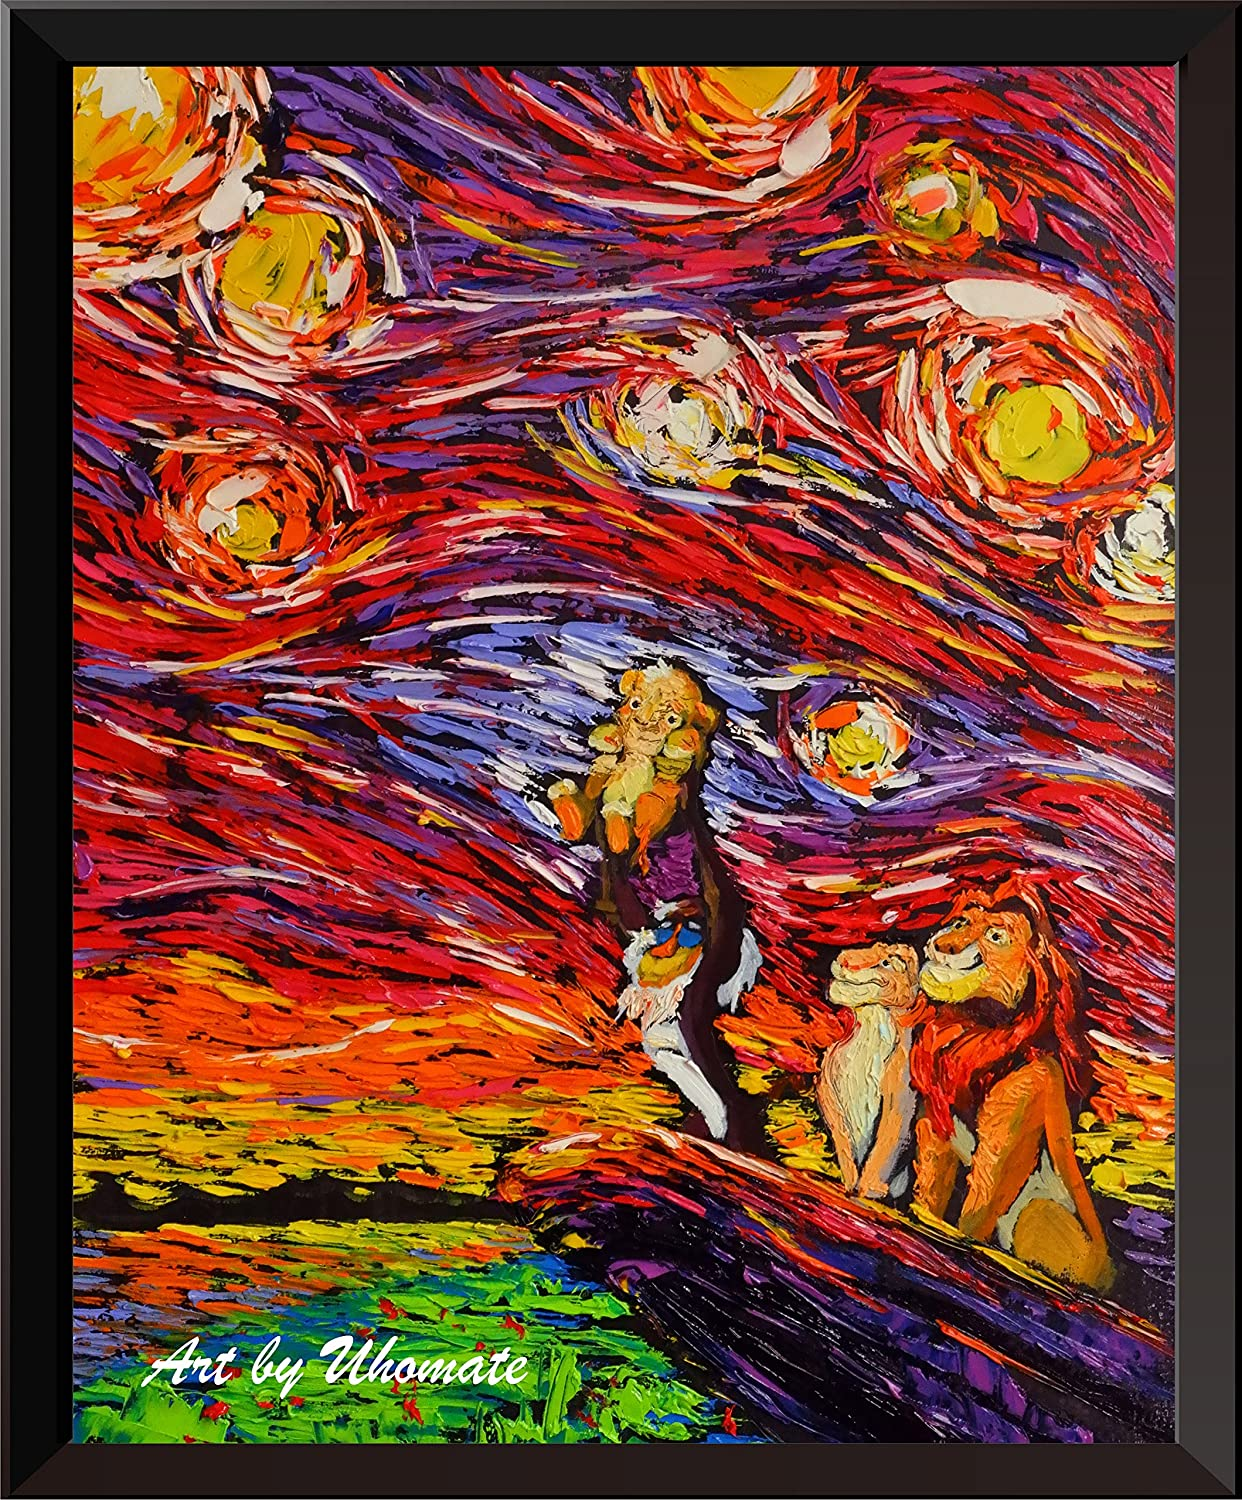 Uhomate The Lion and Son Poster Vincent Gogh Night Van Super Special SALE held Sales for sale Starry Po